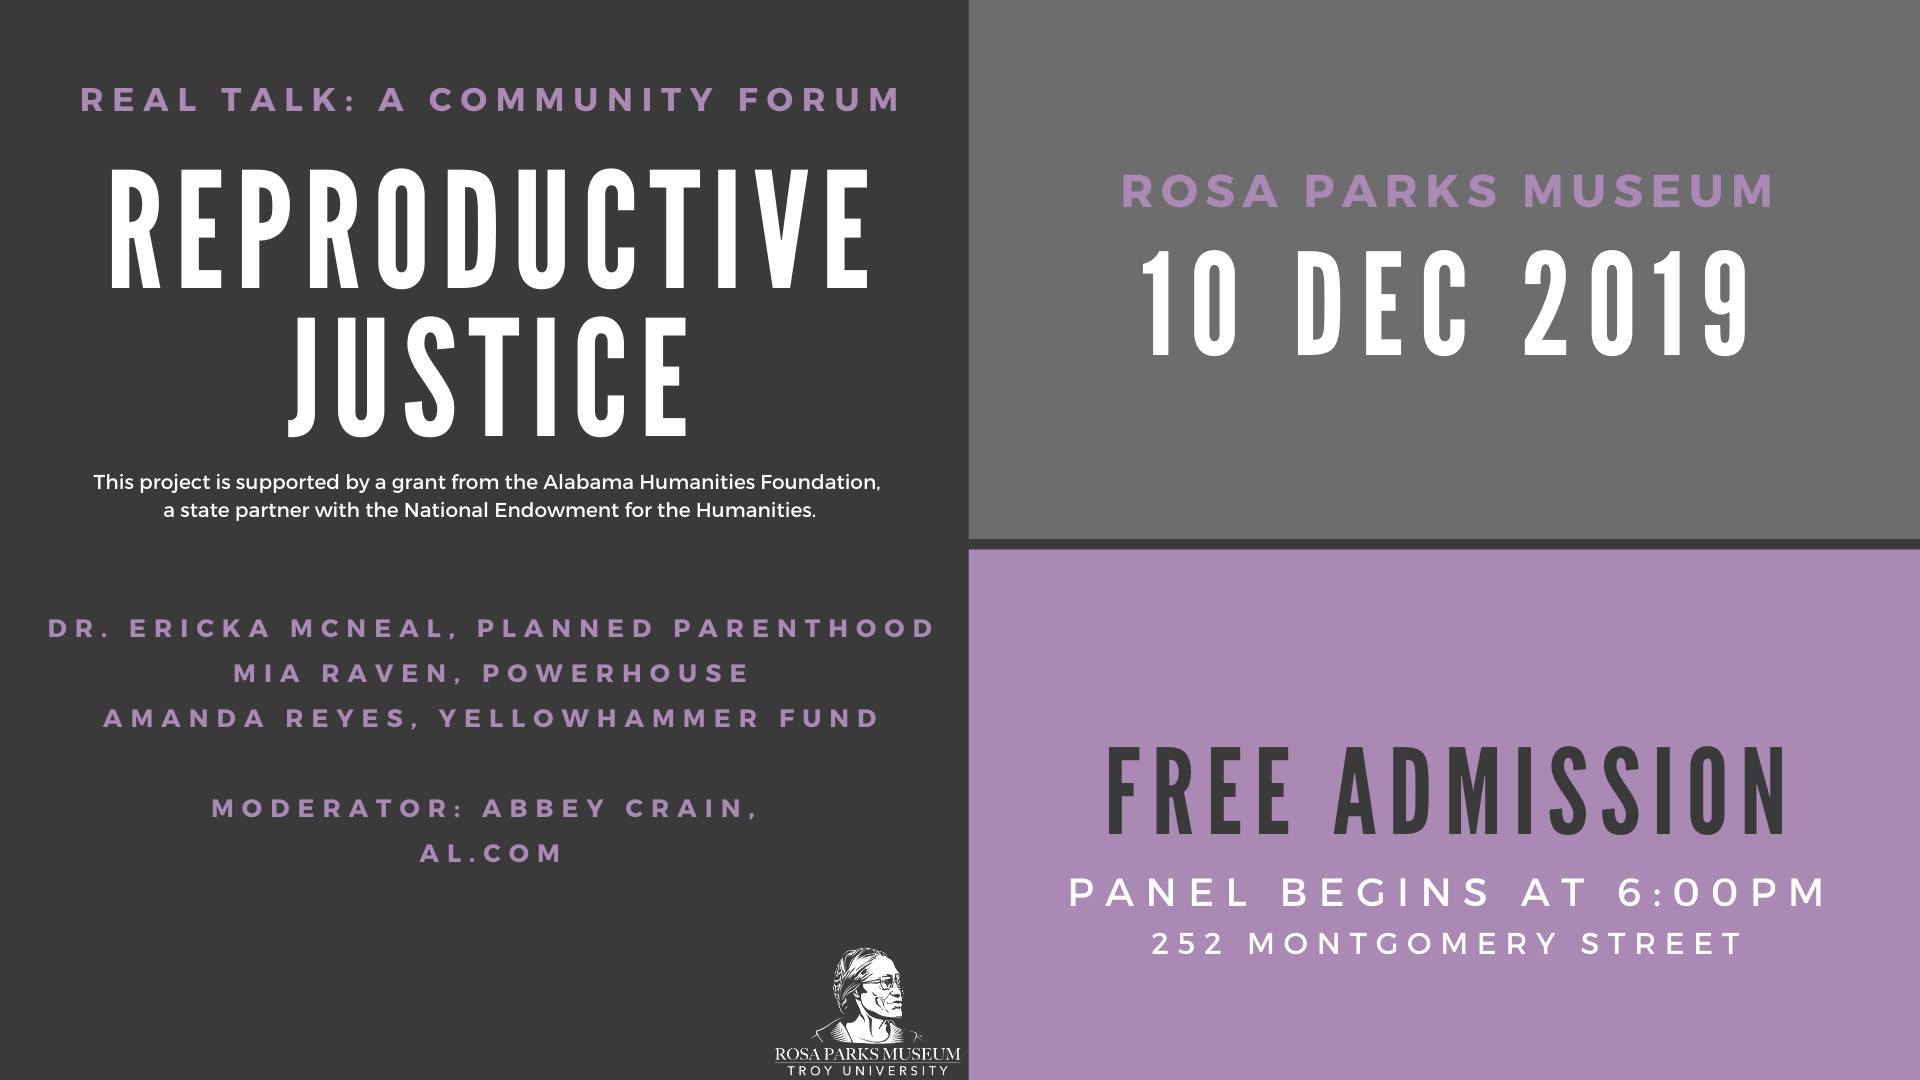 Real Talk Community Forum, Reproductive Justice, December 10, 2019 at 6:00PM, Rosa Parks Museum